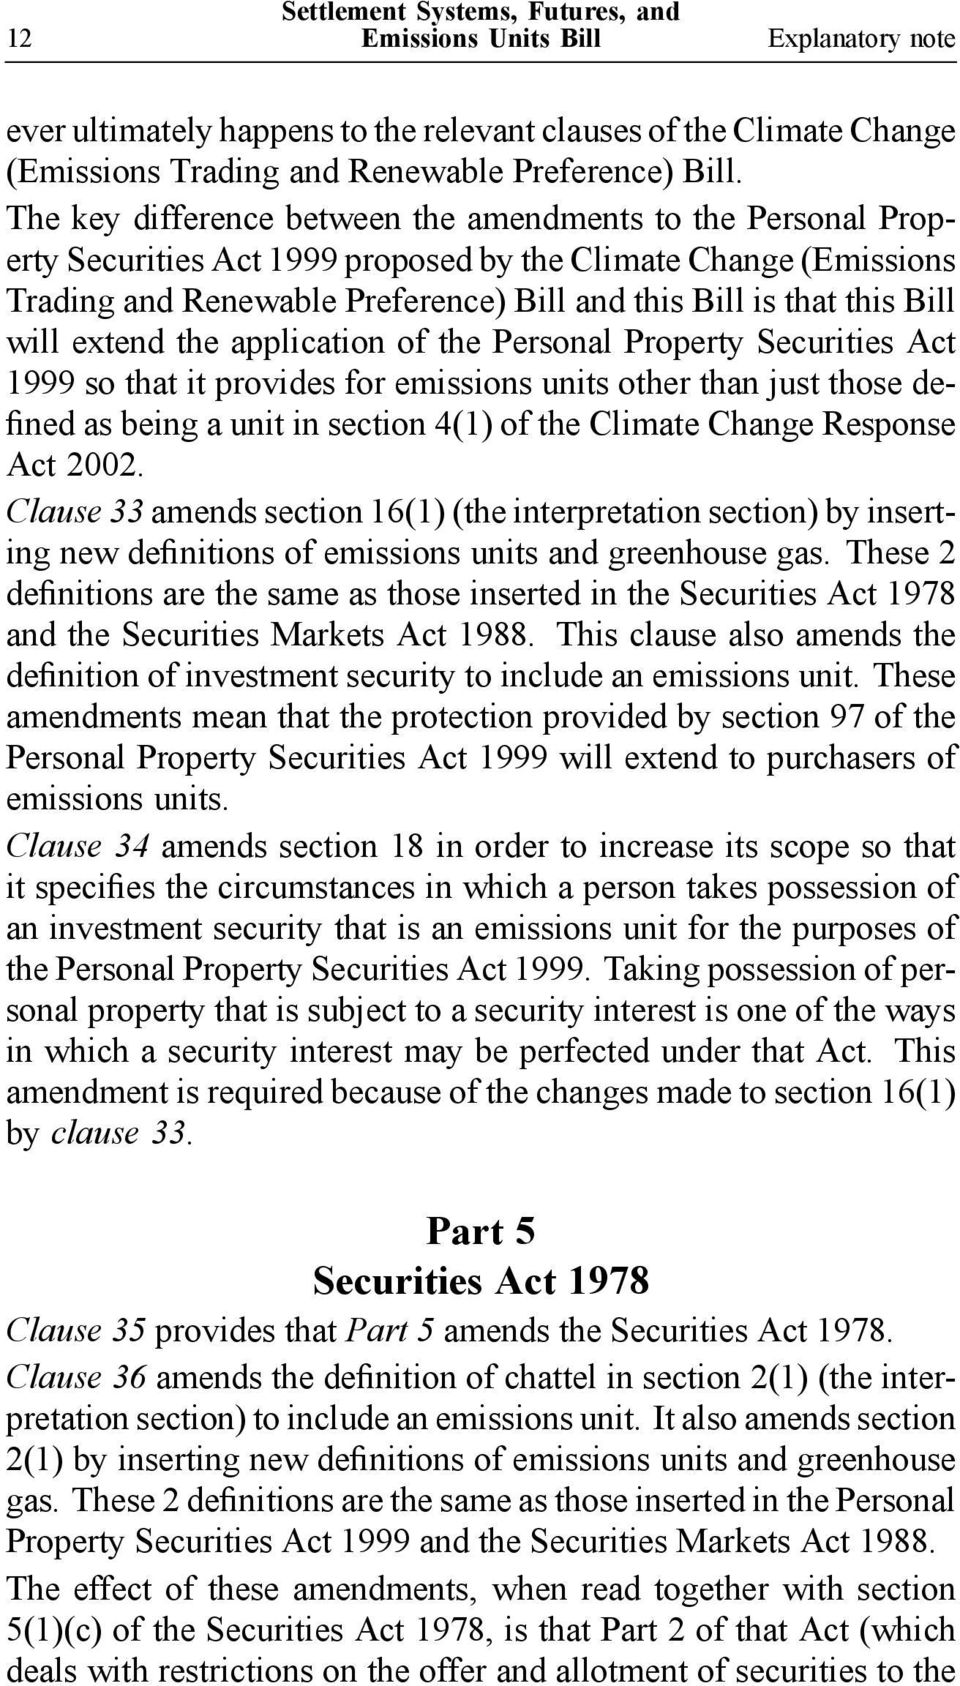 will extend the application of the Personal Property Securities Act 1999 so that it provides for emissions units other than just those defined as being a unit in section 4(1) of the Climate Change